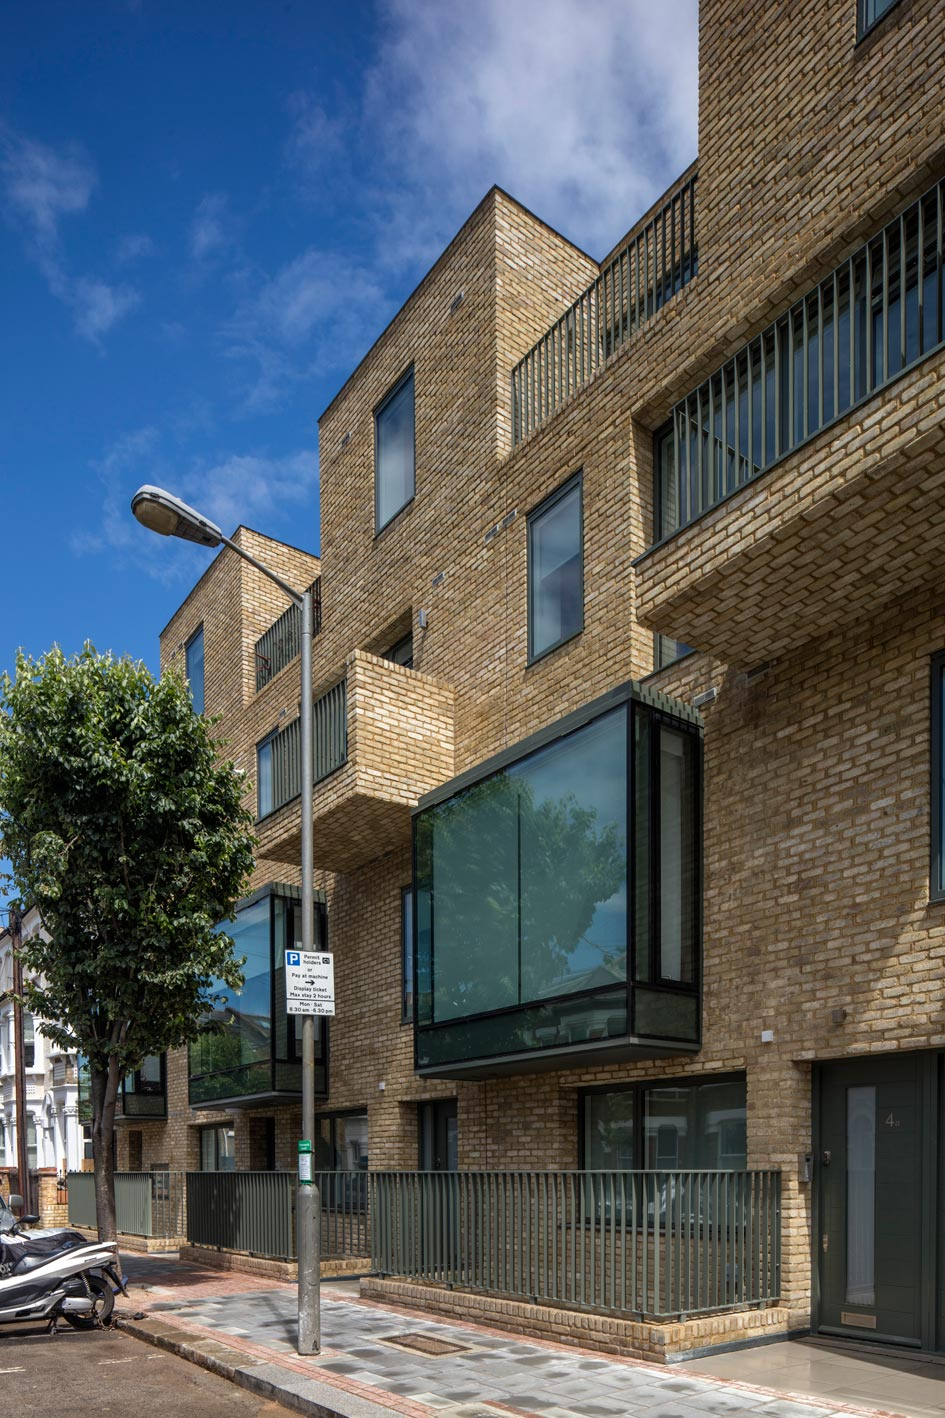 New-residential-development-hafer-road-front-facade